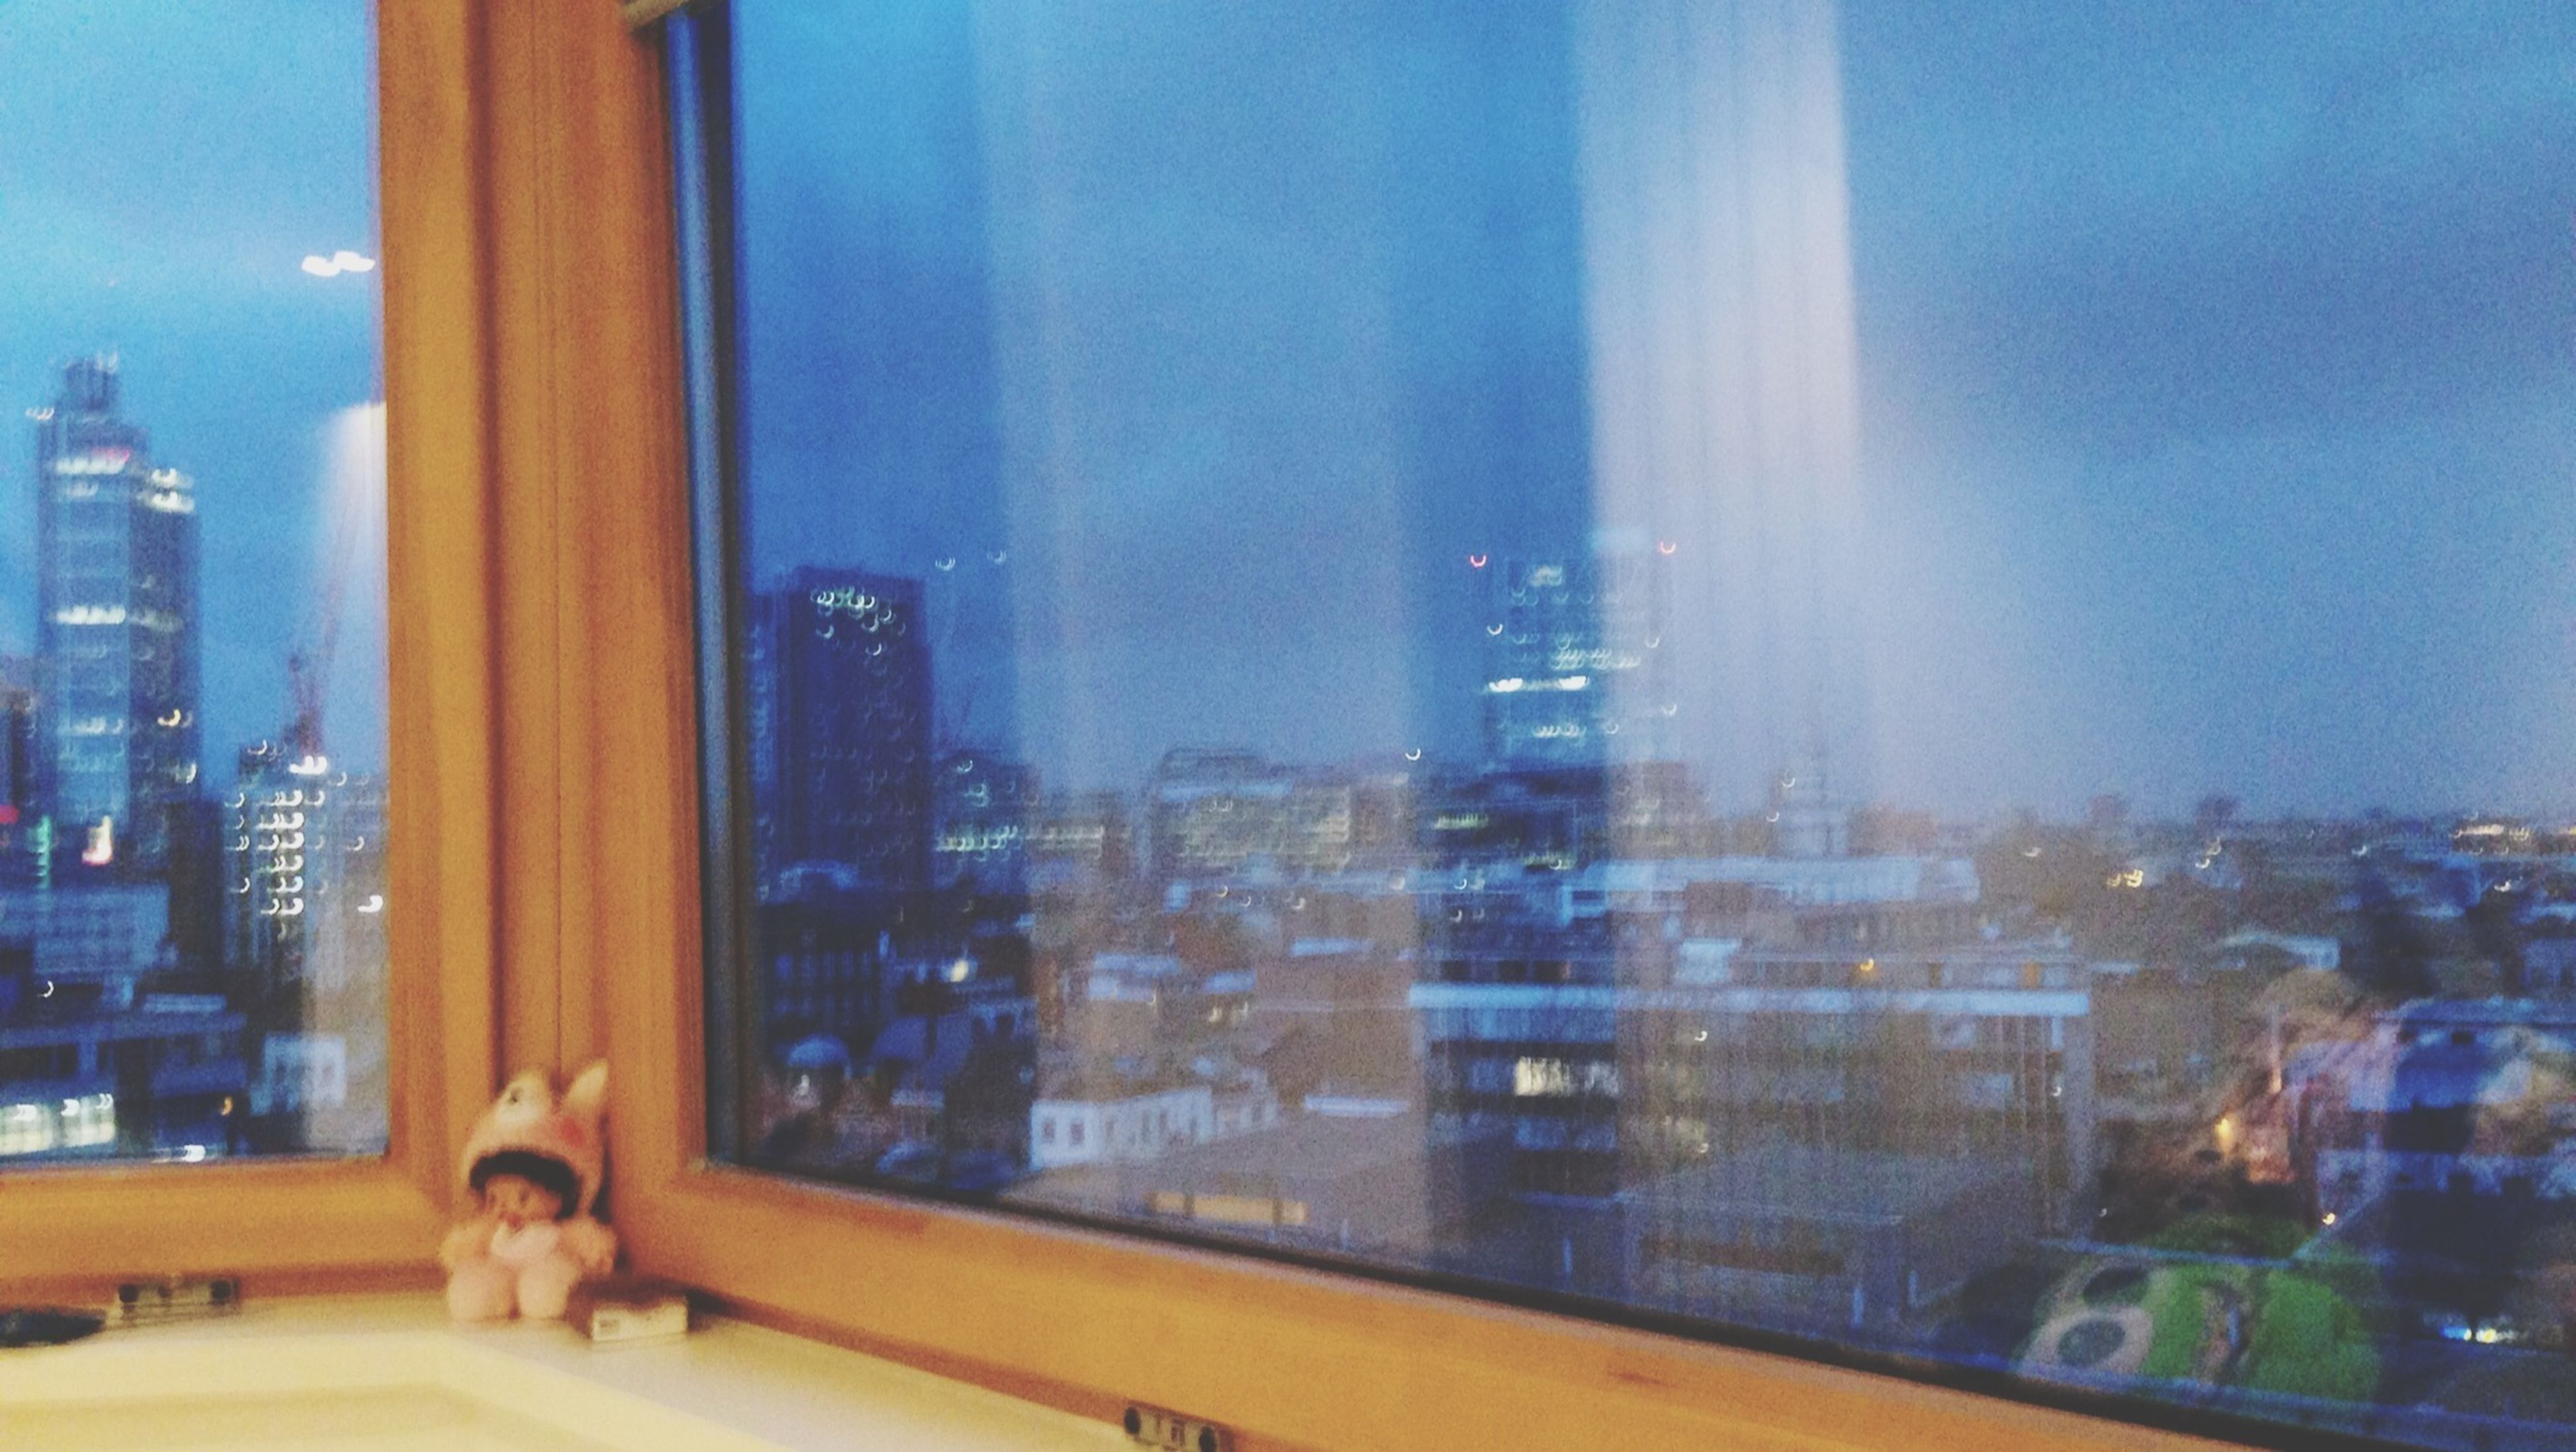 window, glass - material, architecture, building exterior, transparent, built structure, indoors, city, cityscape, glass, reflection, residential building, building, modern, office building, skyscraper, sky, residential structure, looking through window, no people